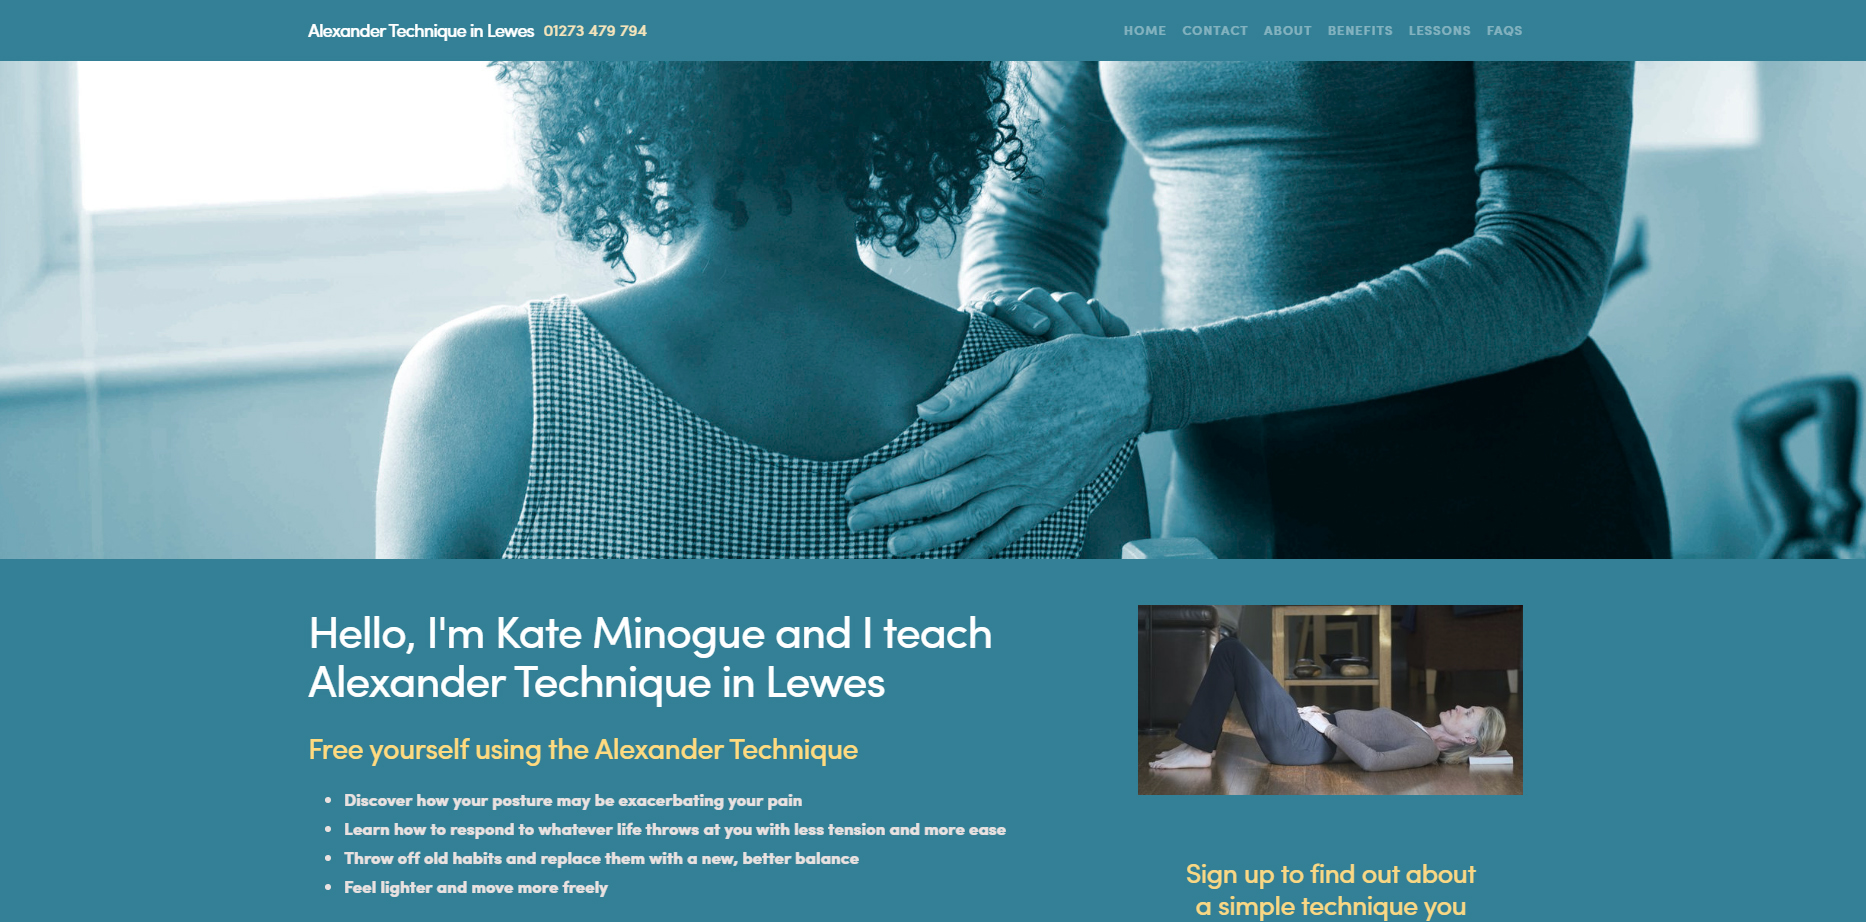 Alexander Technique Kate Minogue home page.jpg